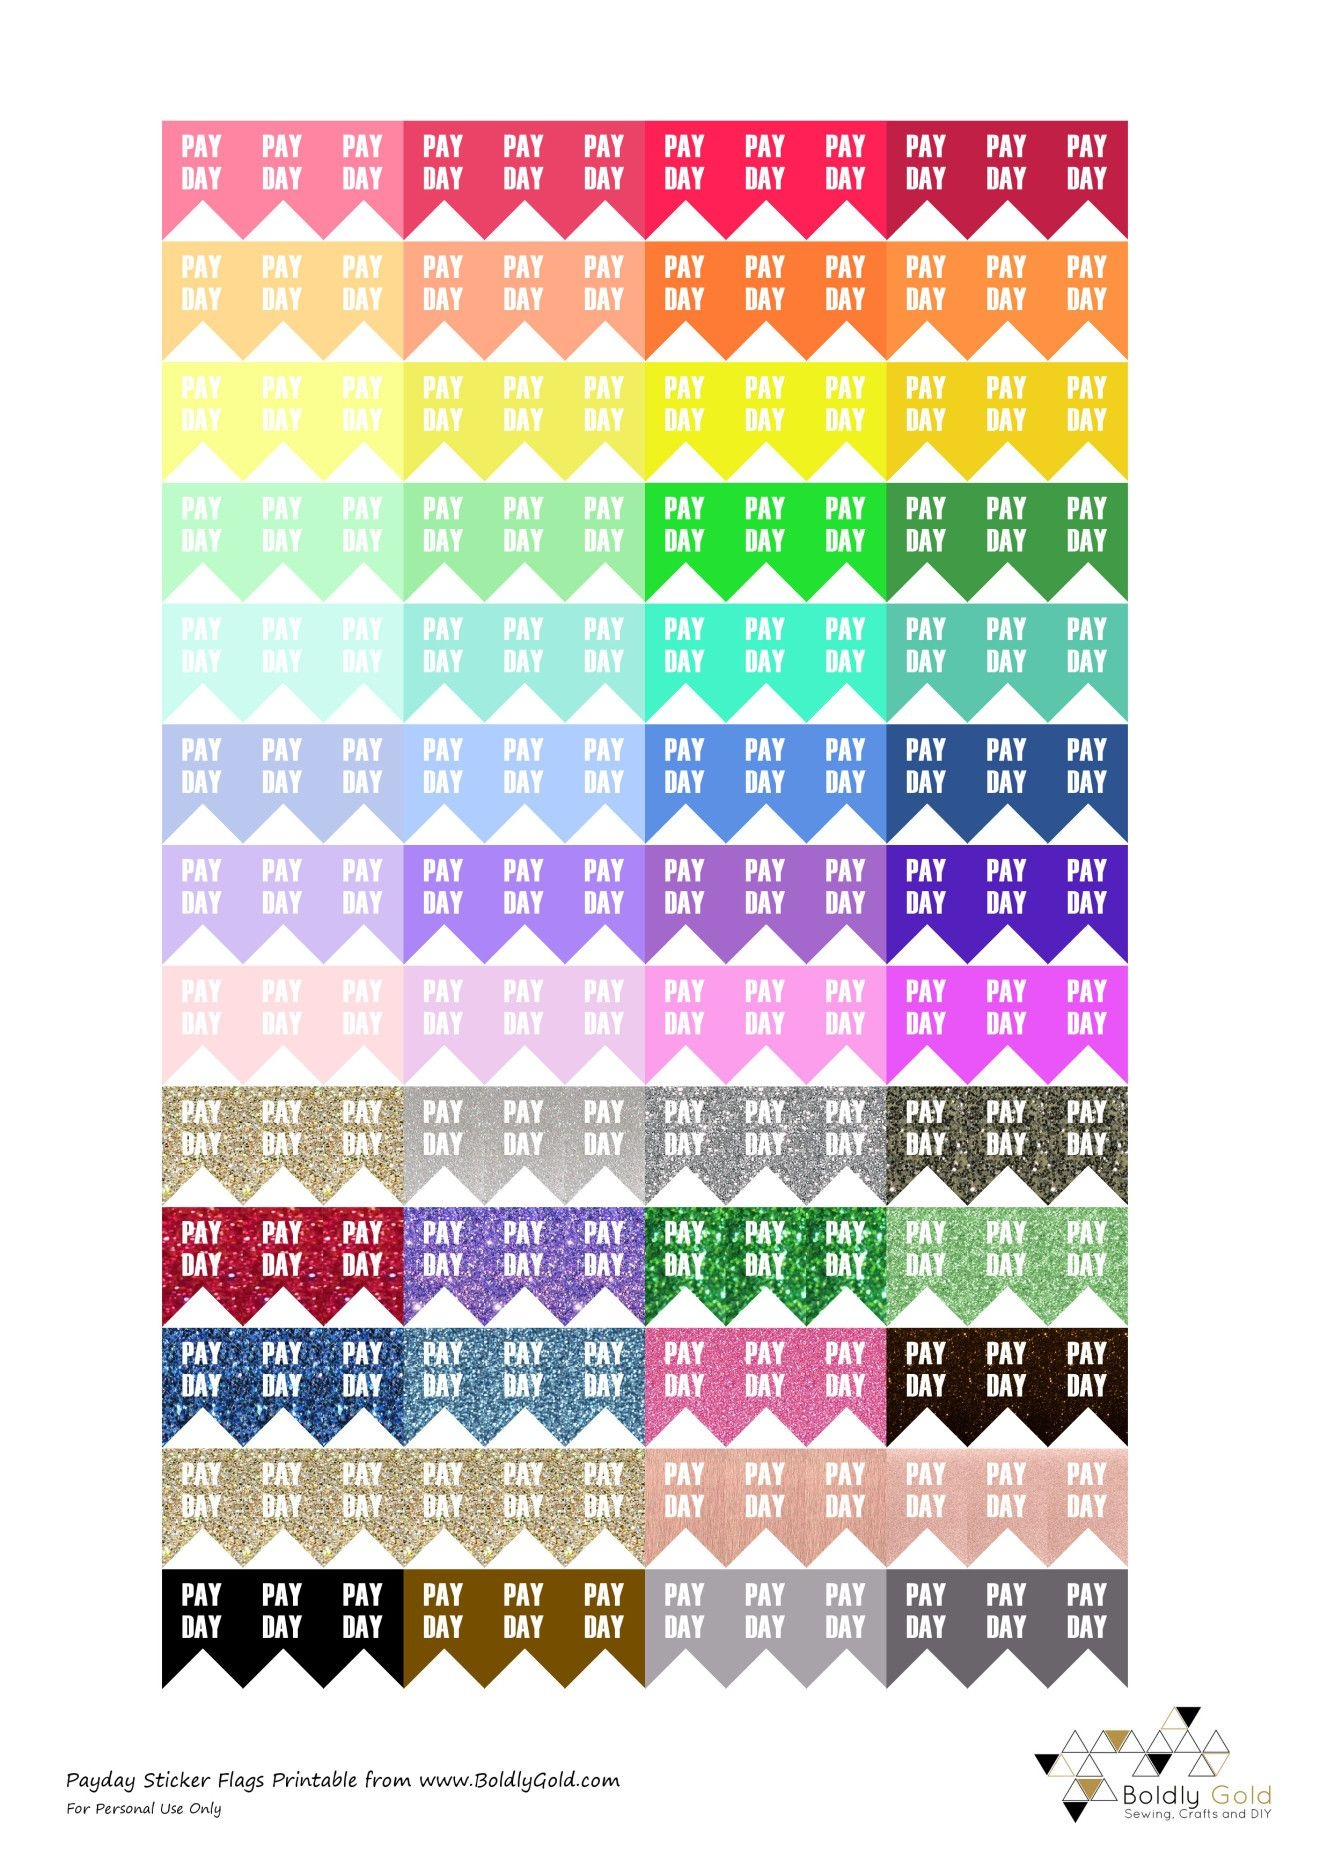 Free Printable Planner Stickers Payday Flags Boldly Gold | Planer - Free Printable Payday Stickers